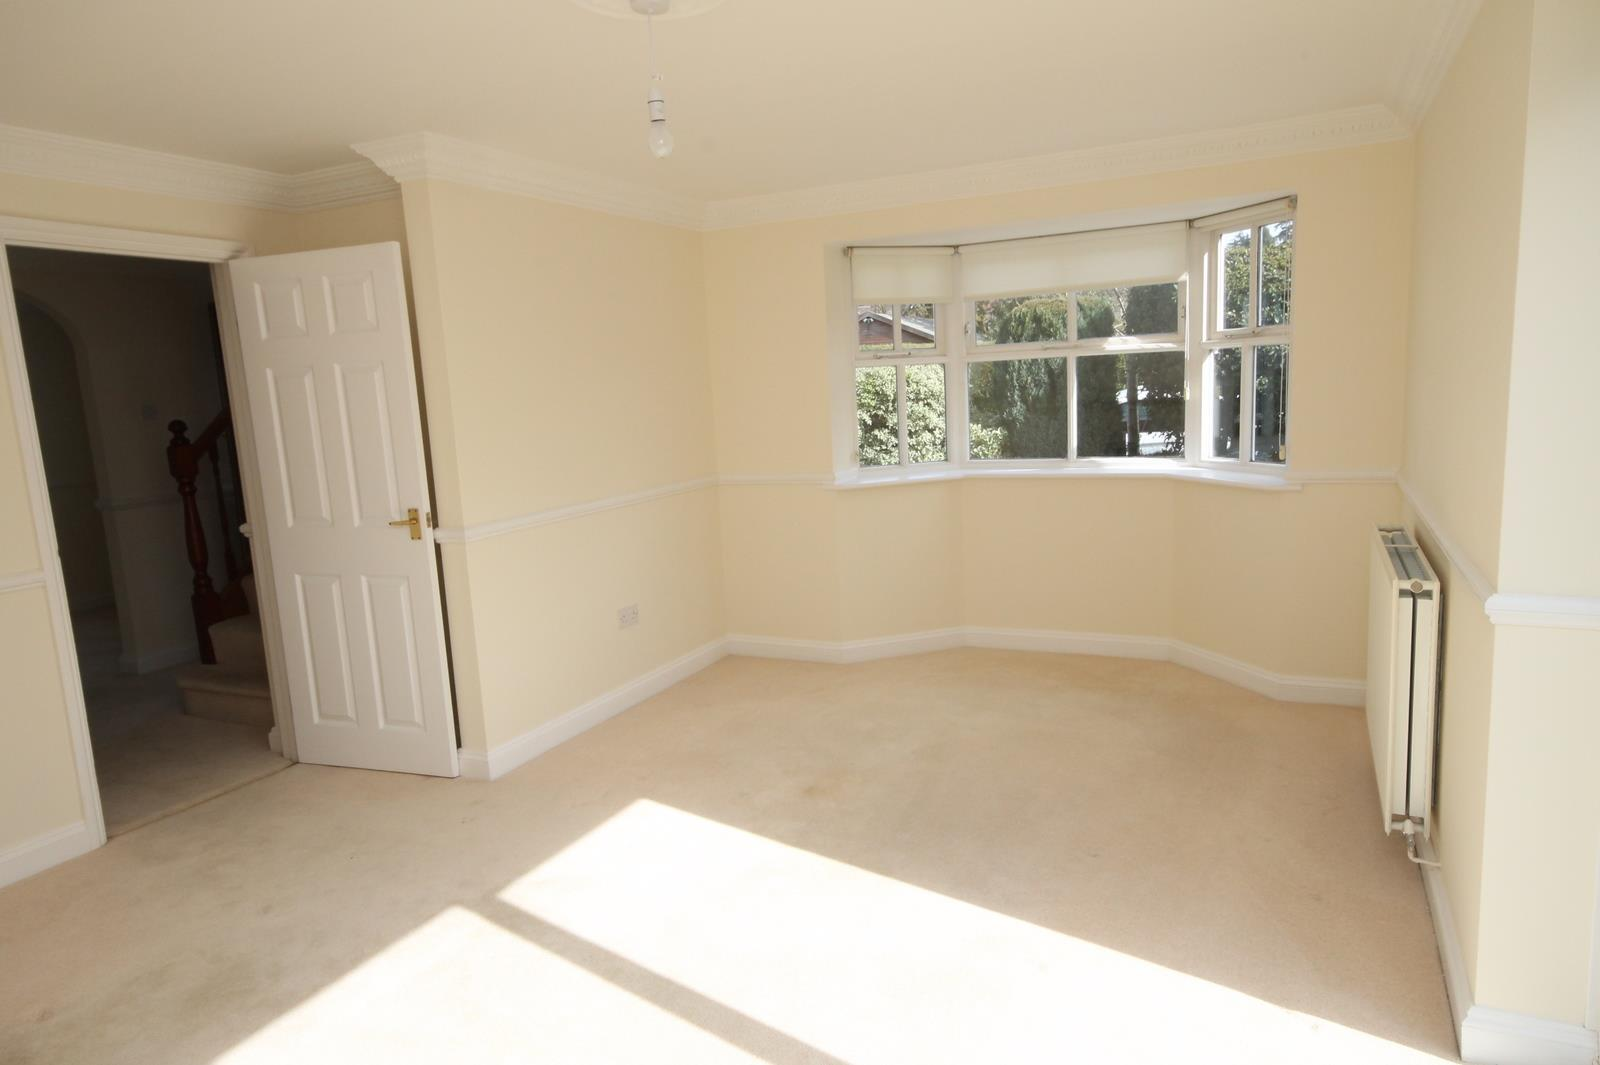 4 bed house to rent in Reedley Road, Bristol  - Property Image 3